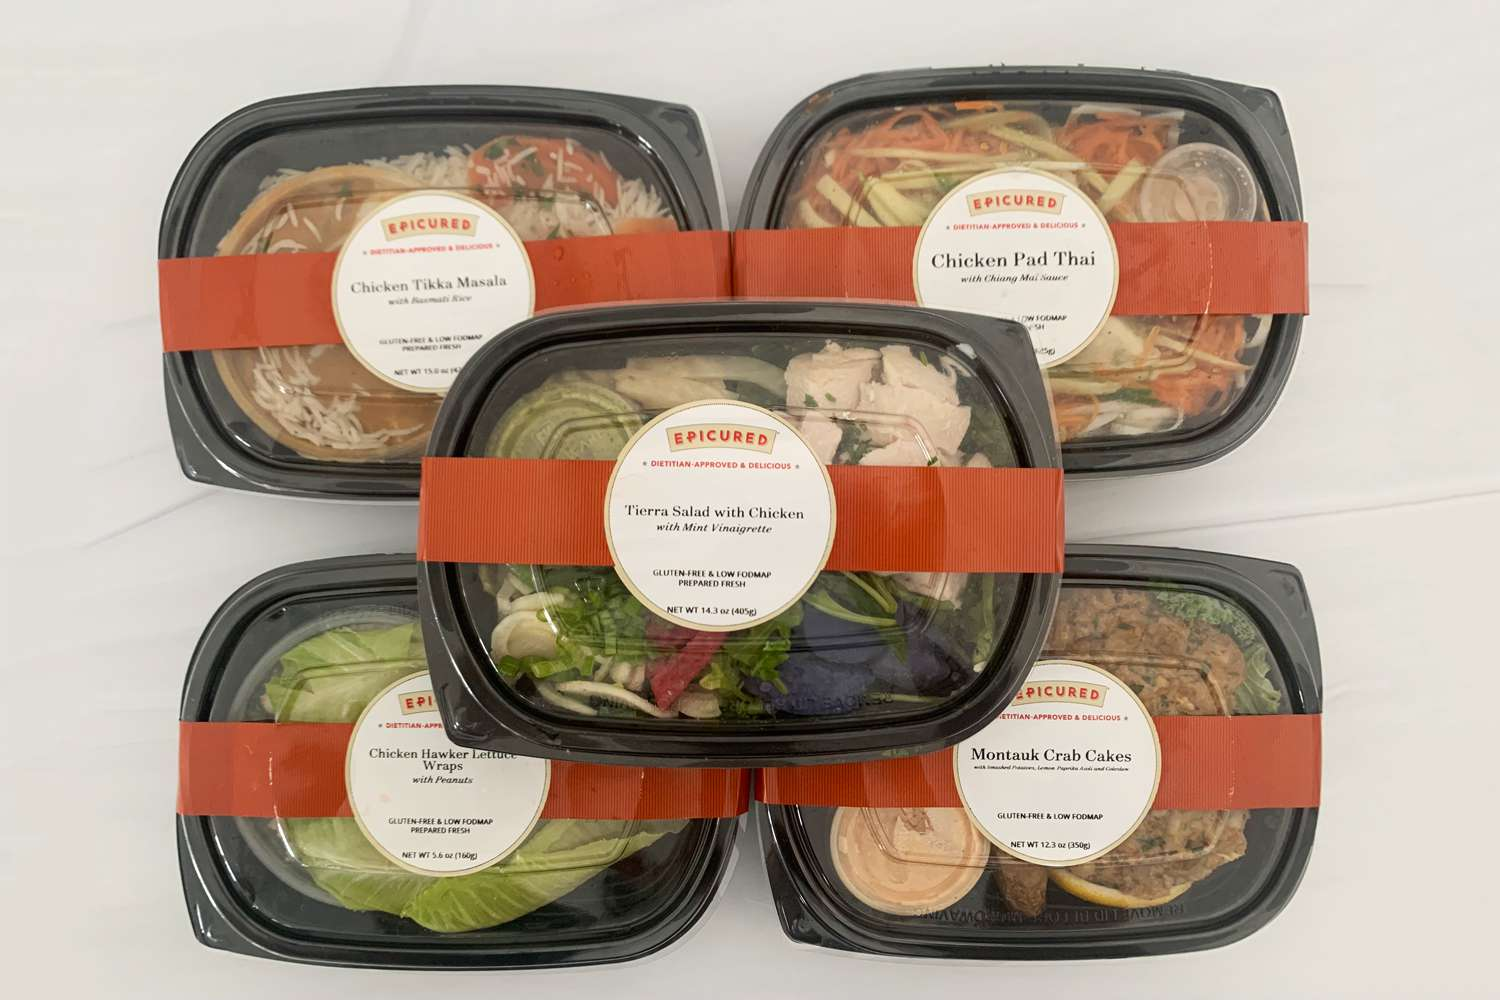 Epicured meals in packaging